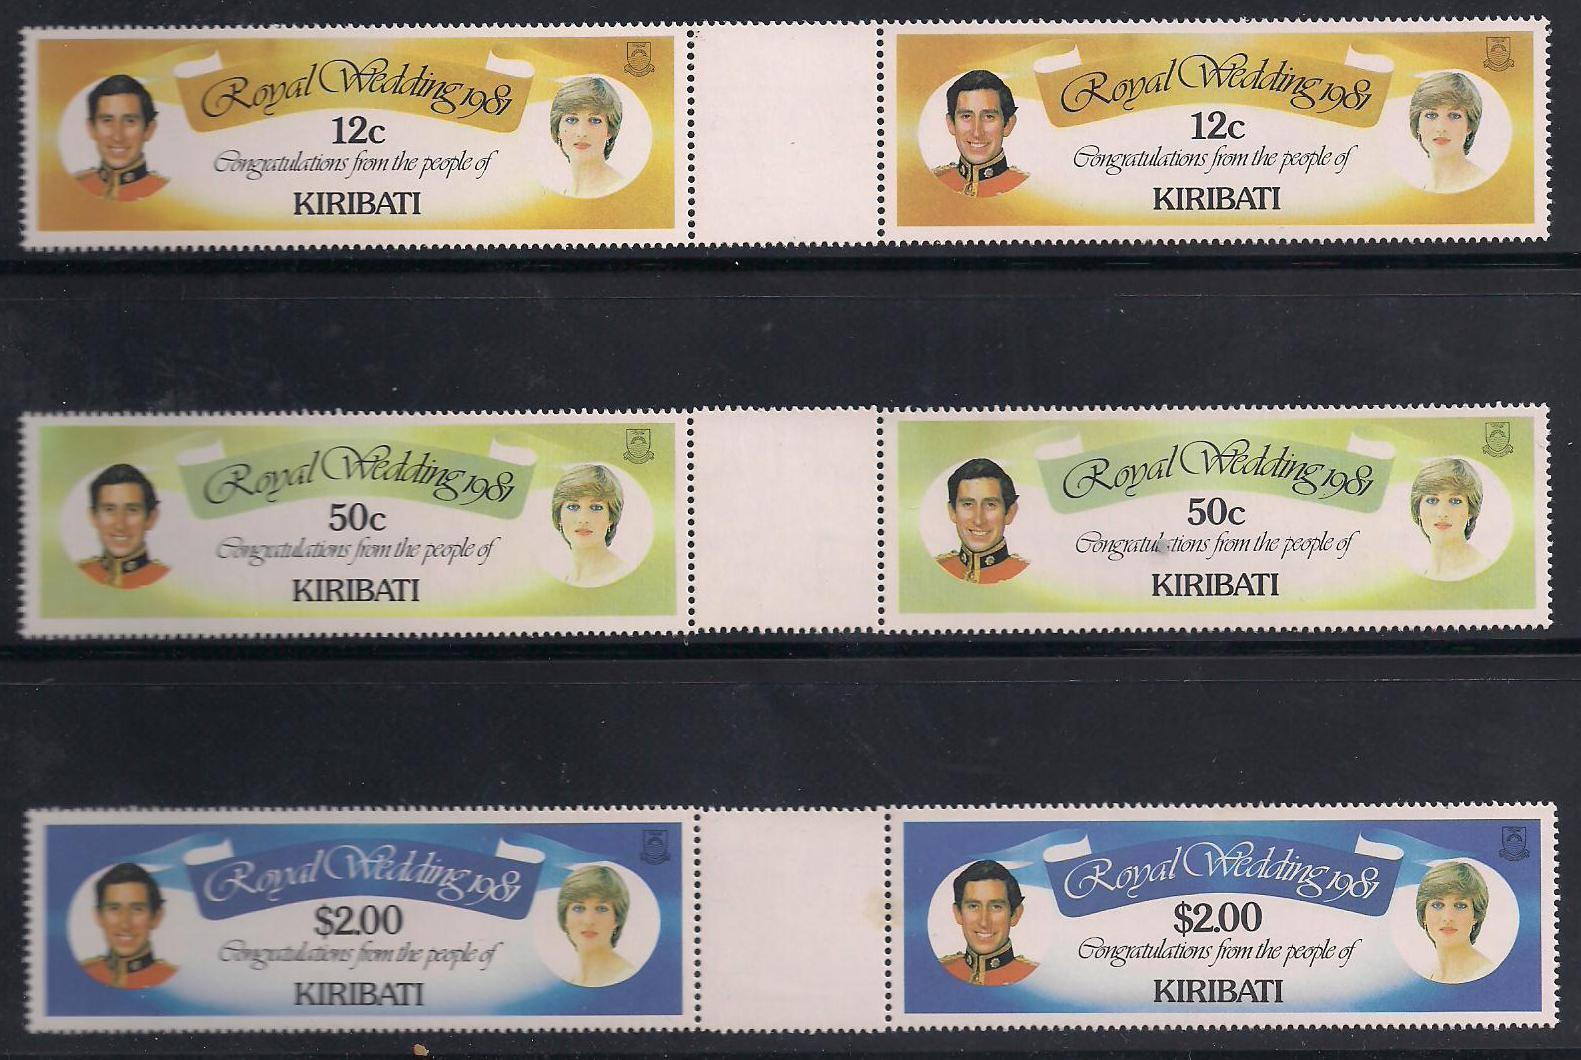 1981 KIR - Charles & Di Wedding Gutter Pr Set (6) MNH